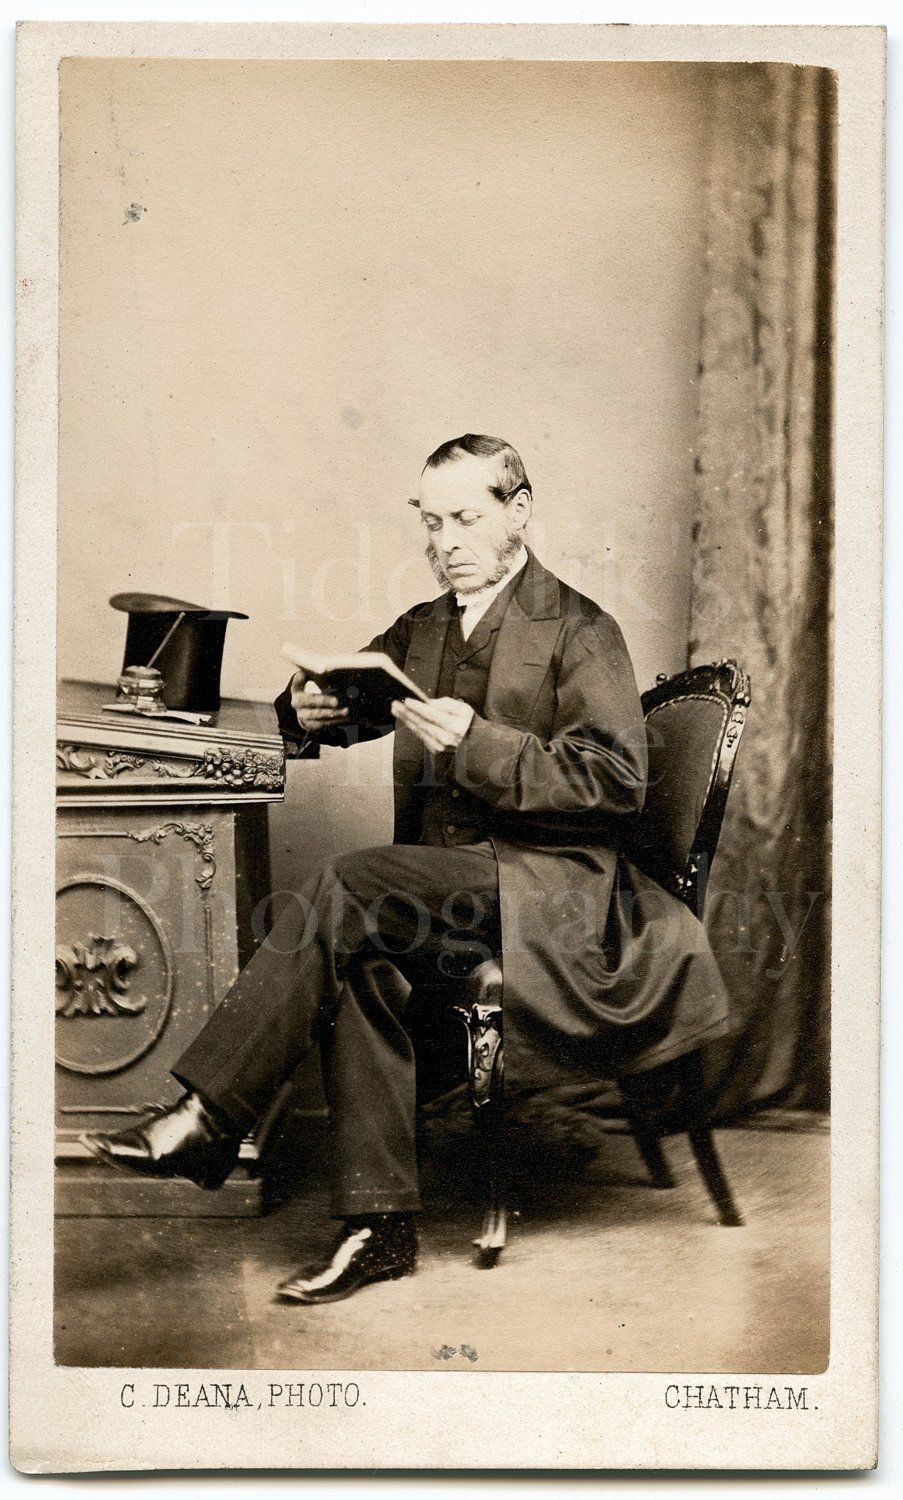 CDV Photo Victorian Man Reading Book Top Hat Portrait Charles Deana Chatham